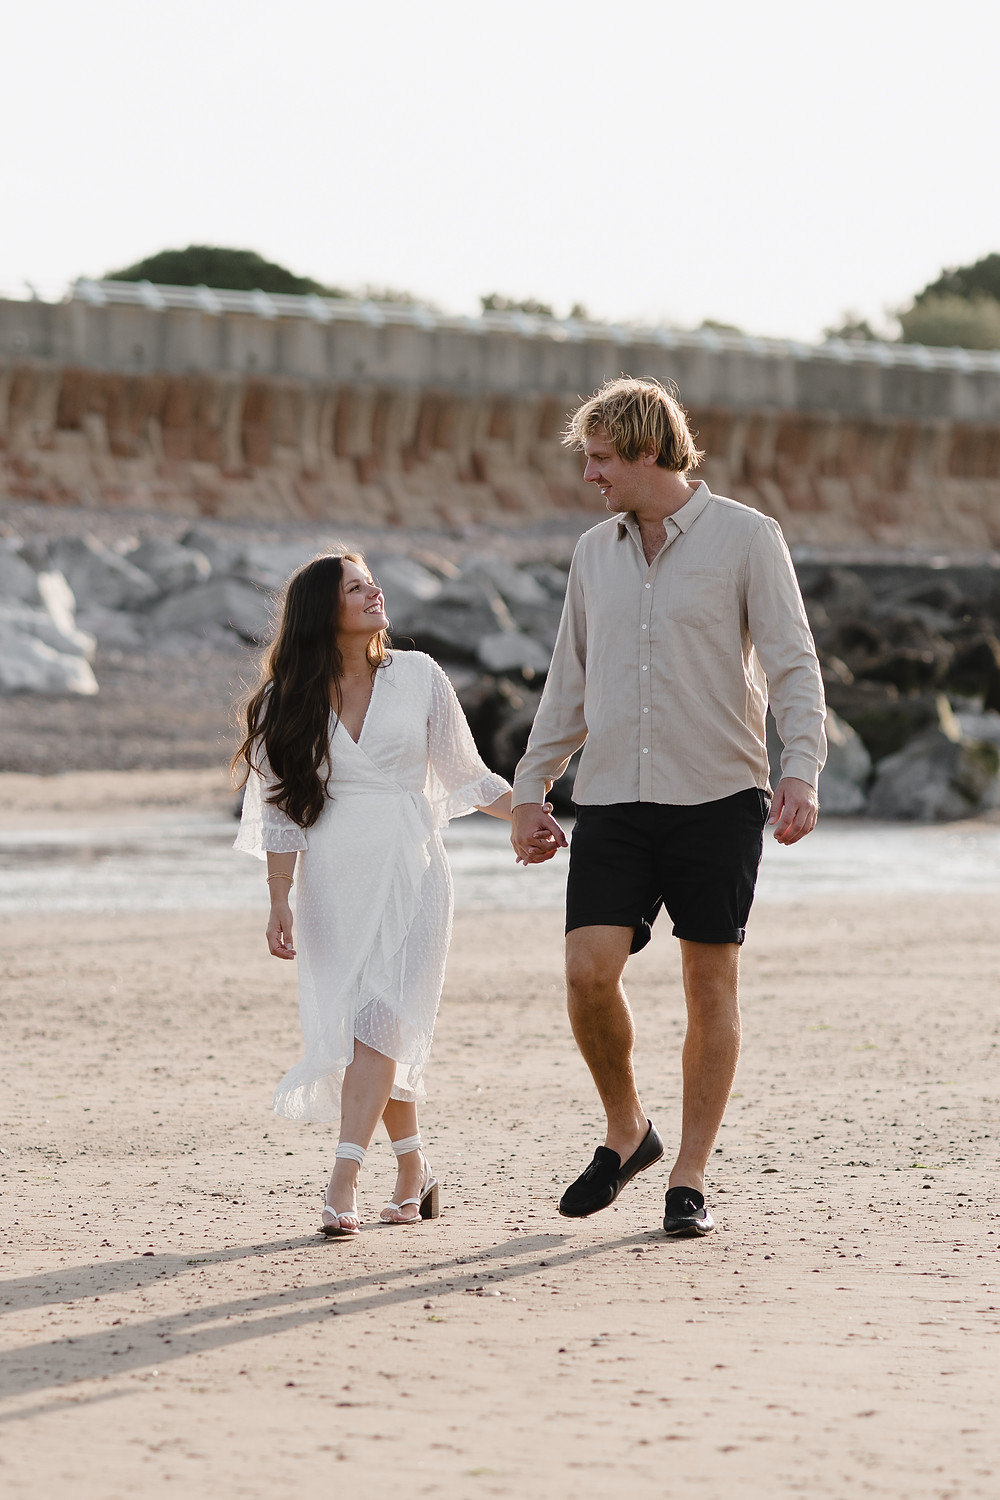 Engagement Photo Shoot  by Heather Bailey Photography at Minehead beach